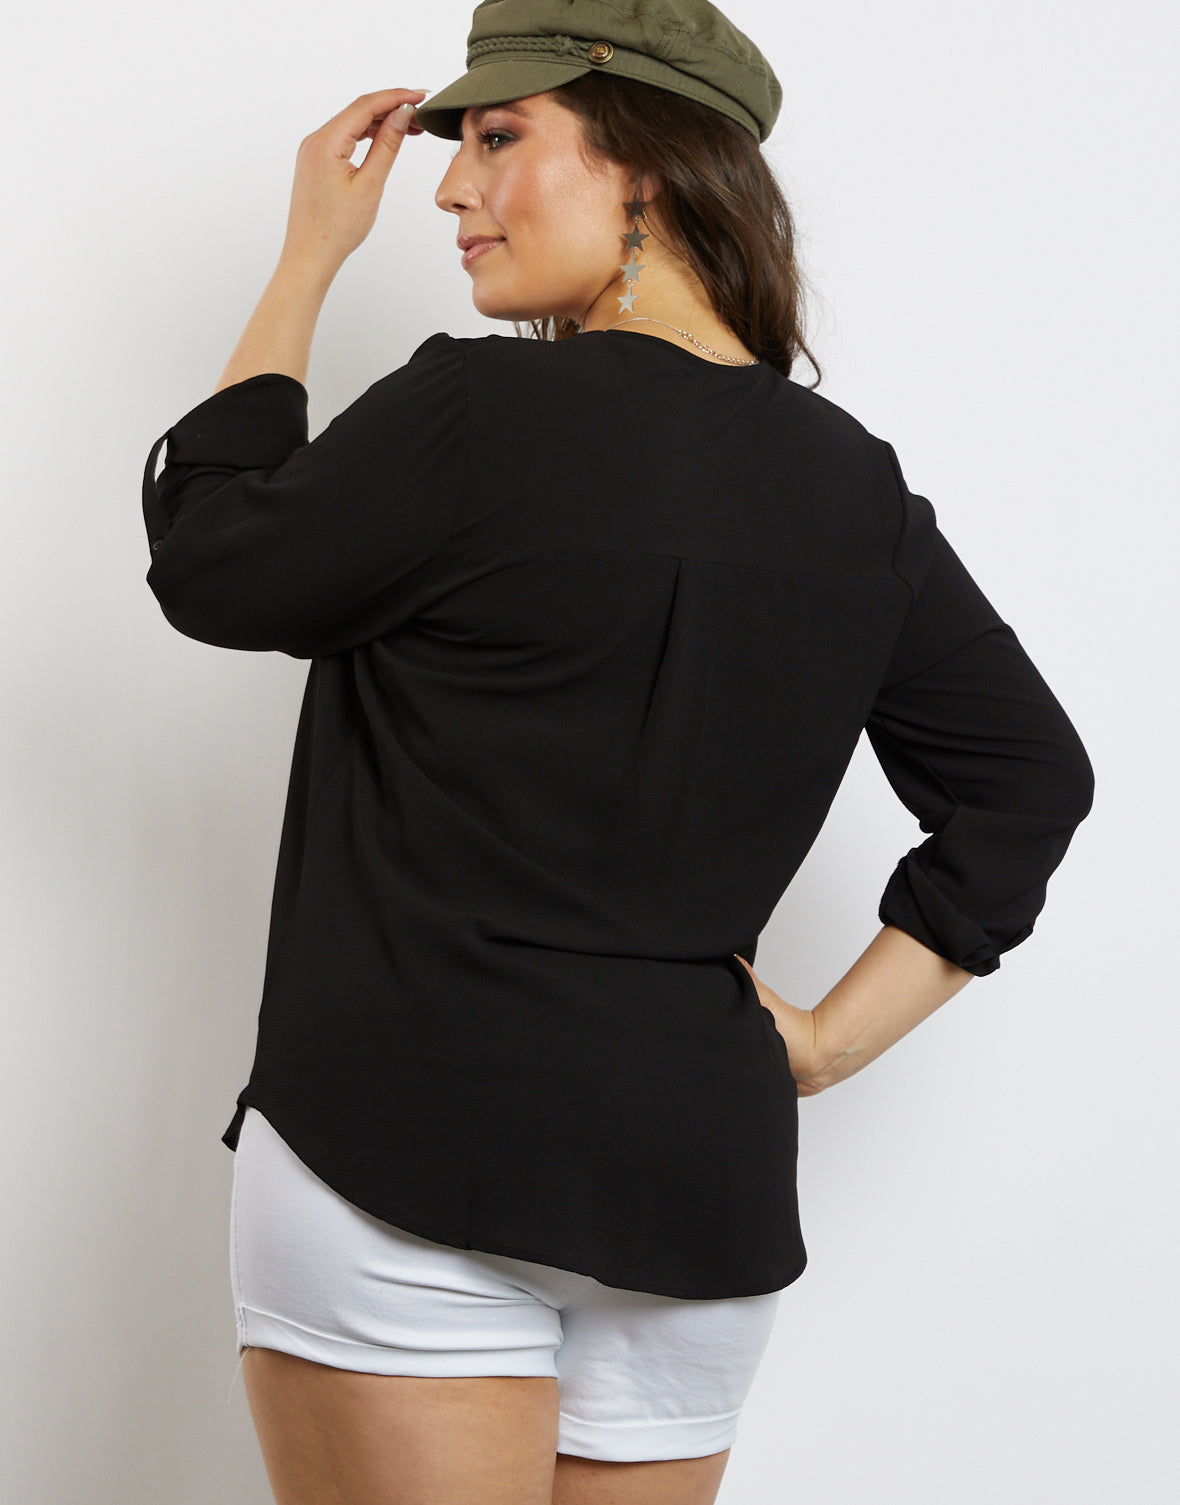 Plus Size Laid Back Chiffon Blouse